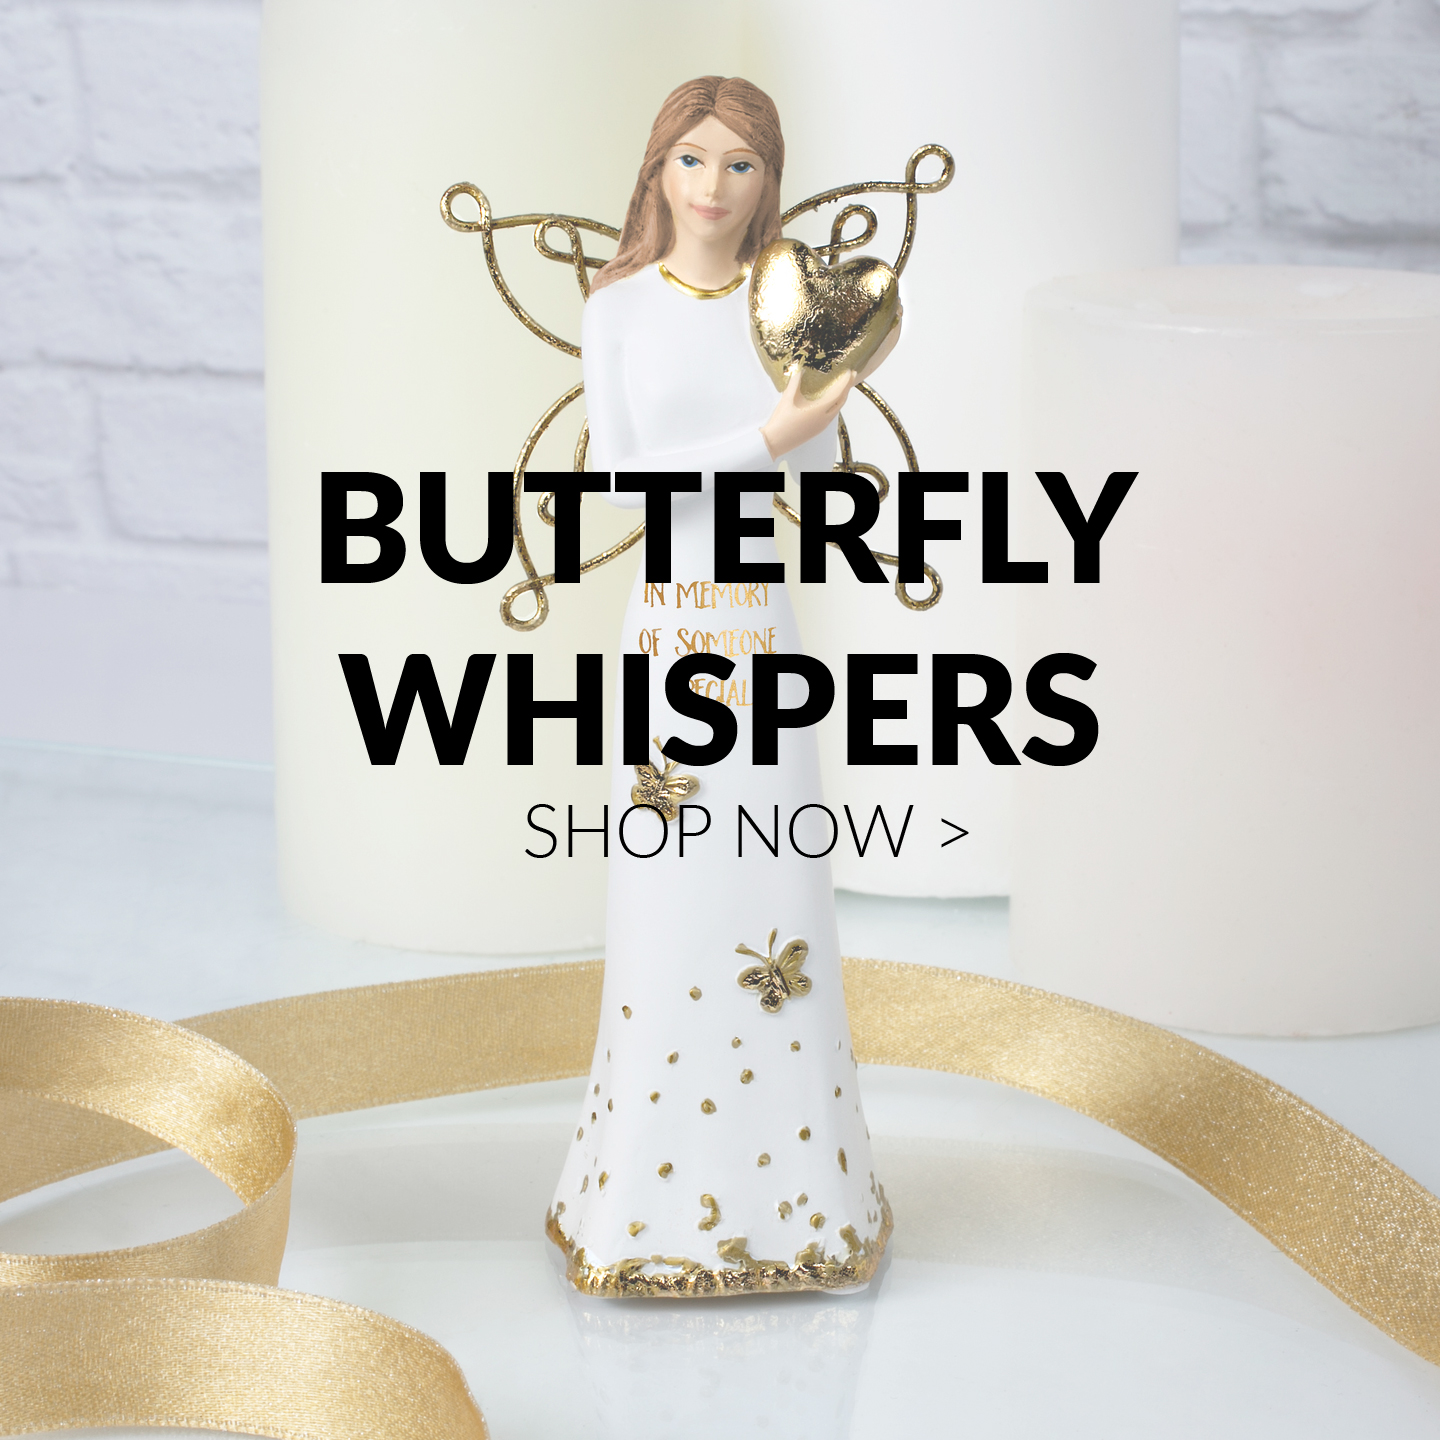 Butterfly Whispers by Amylee Weeks